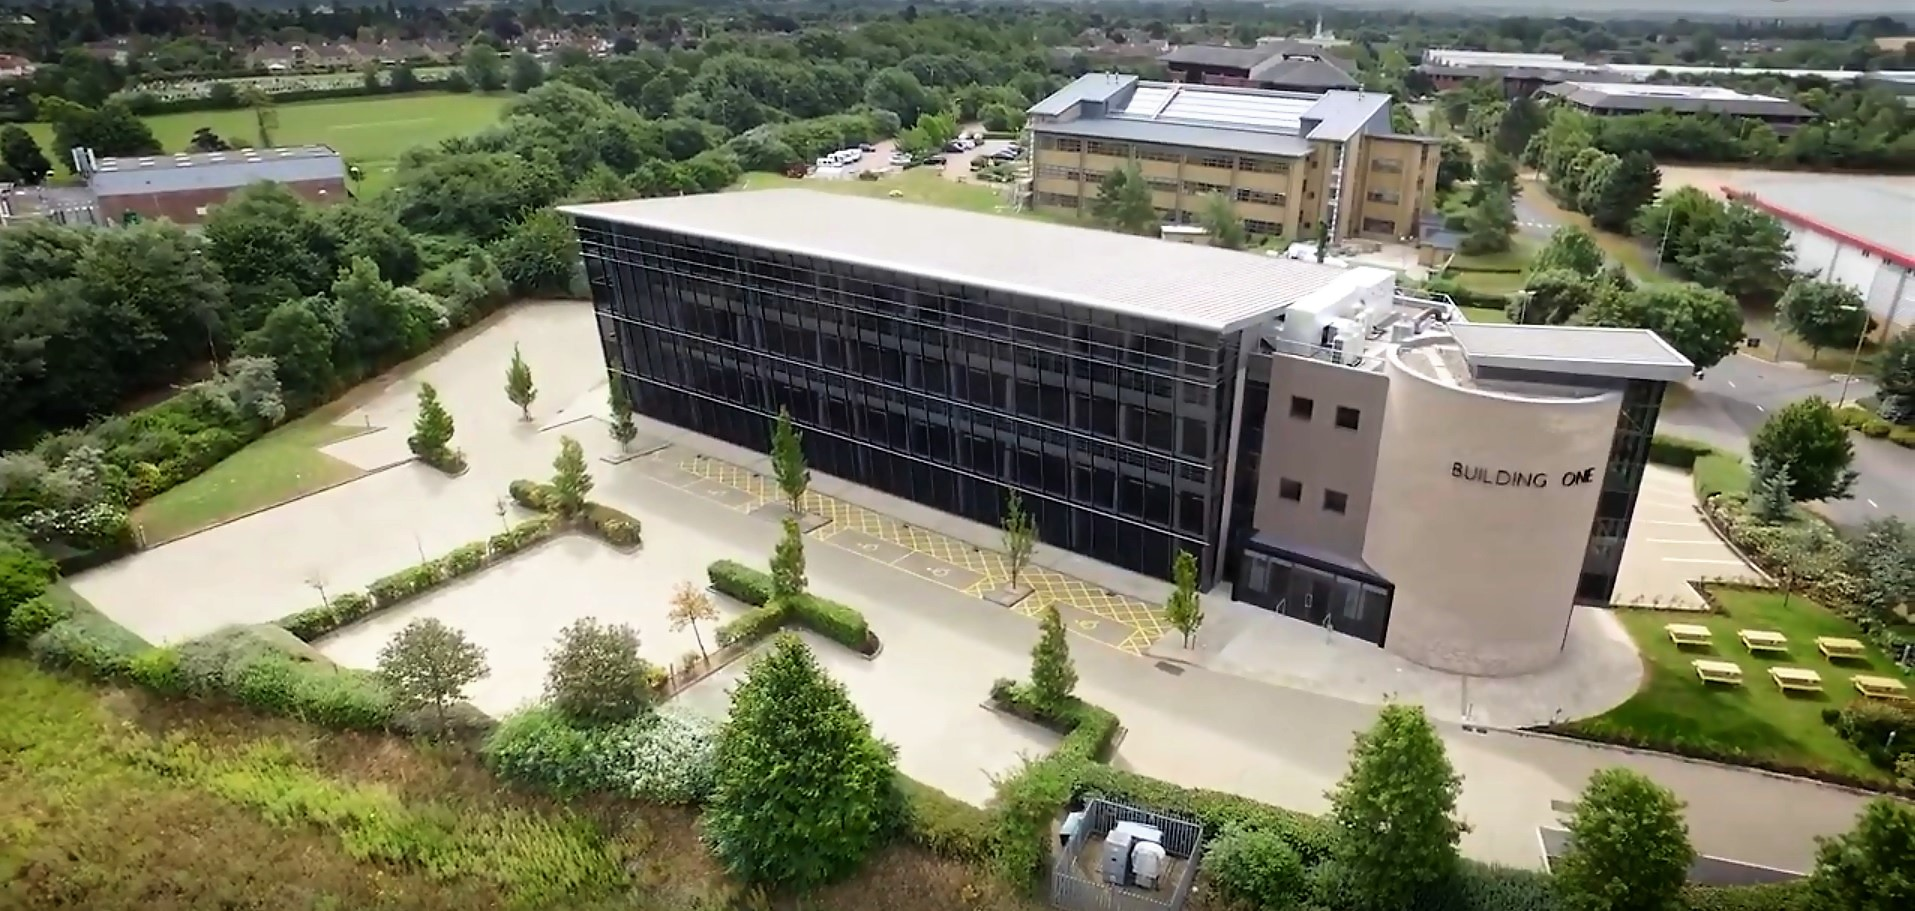 Offices on Abingdon Business Park, Abingdon, OX14 1UQ